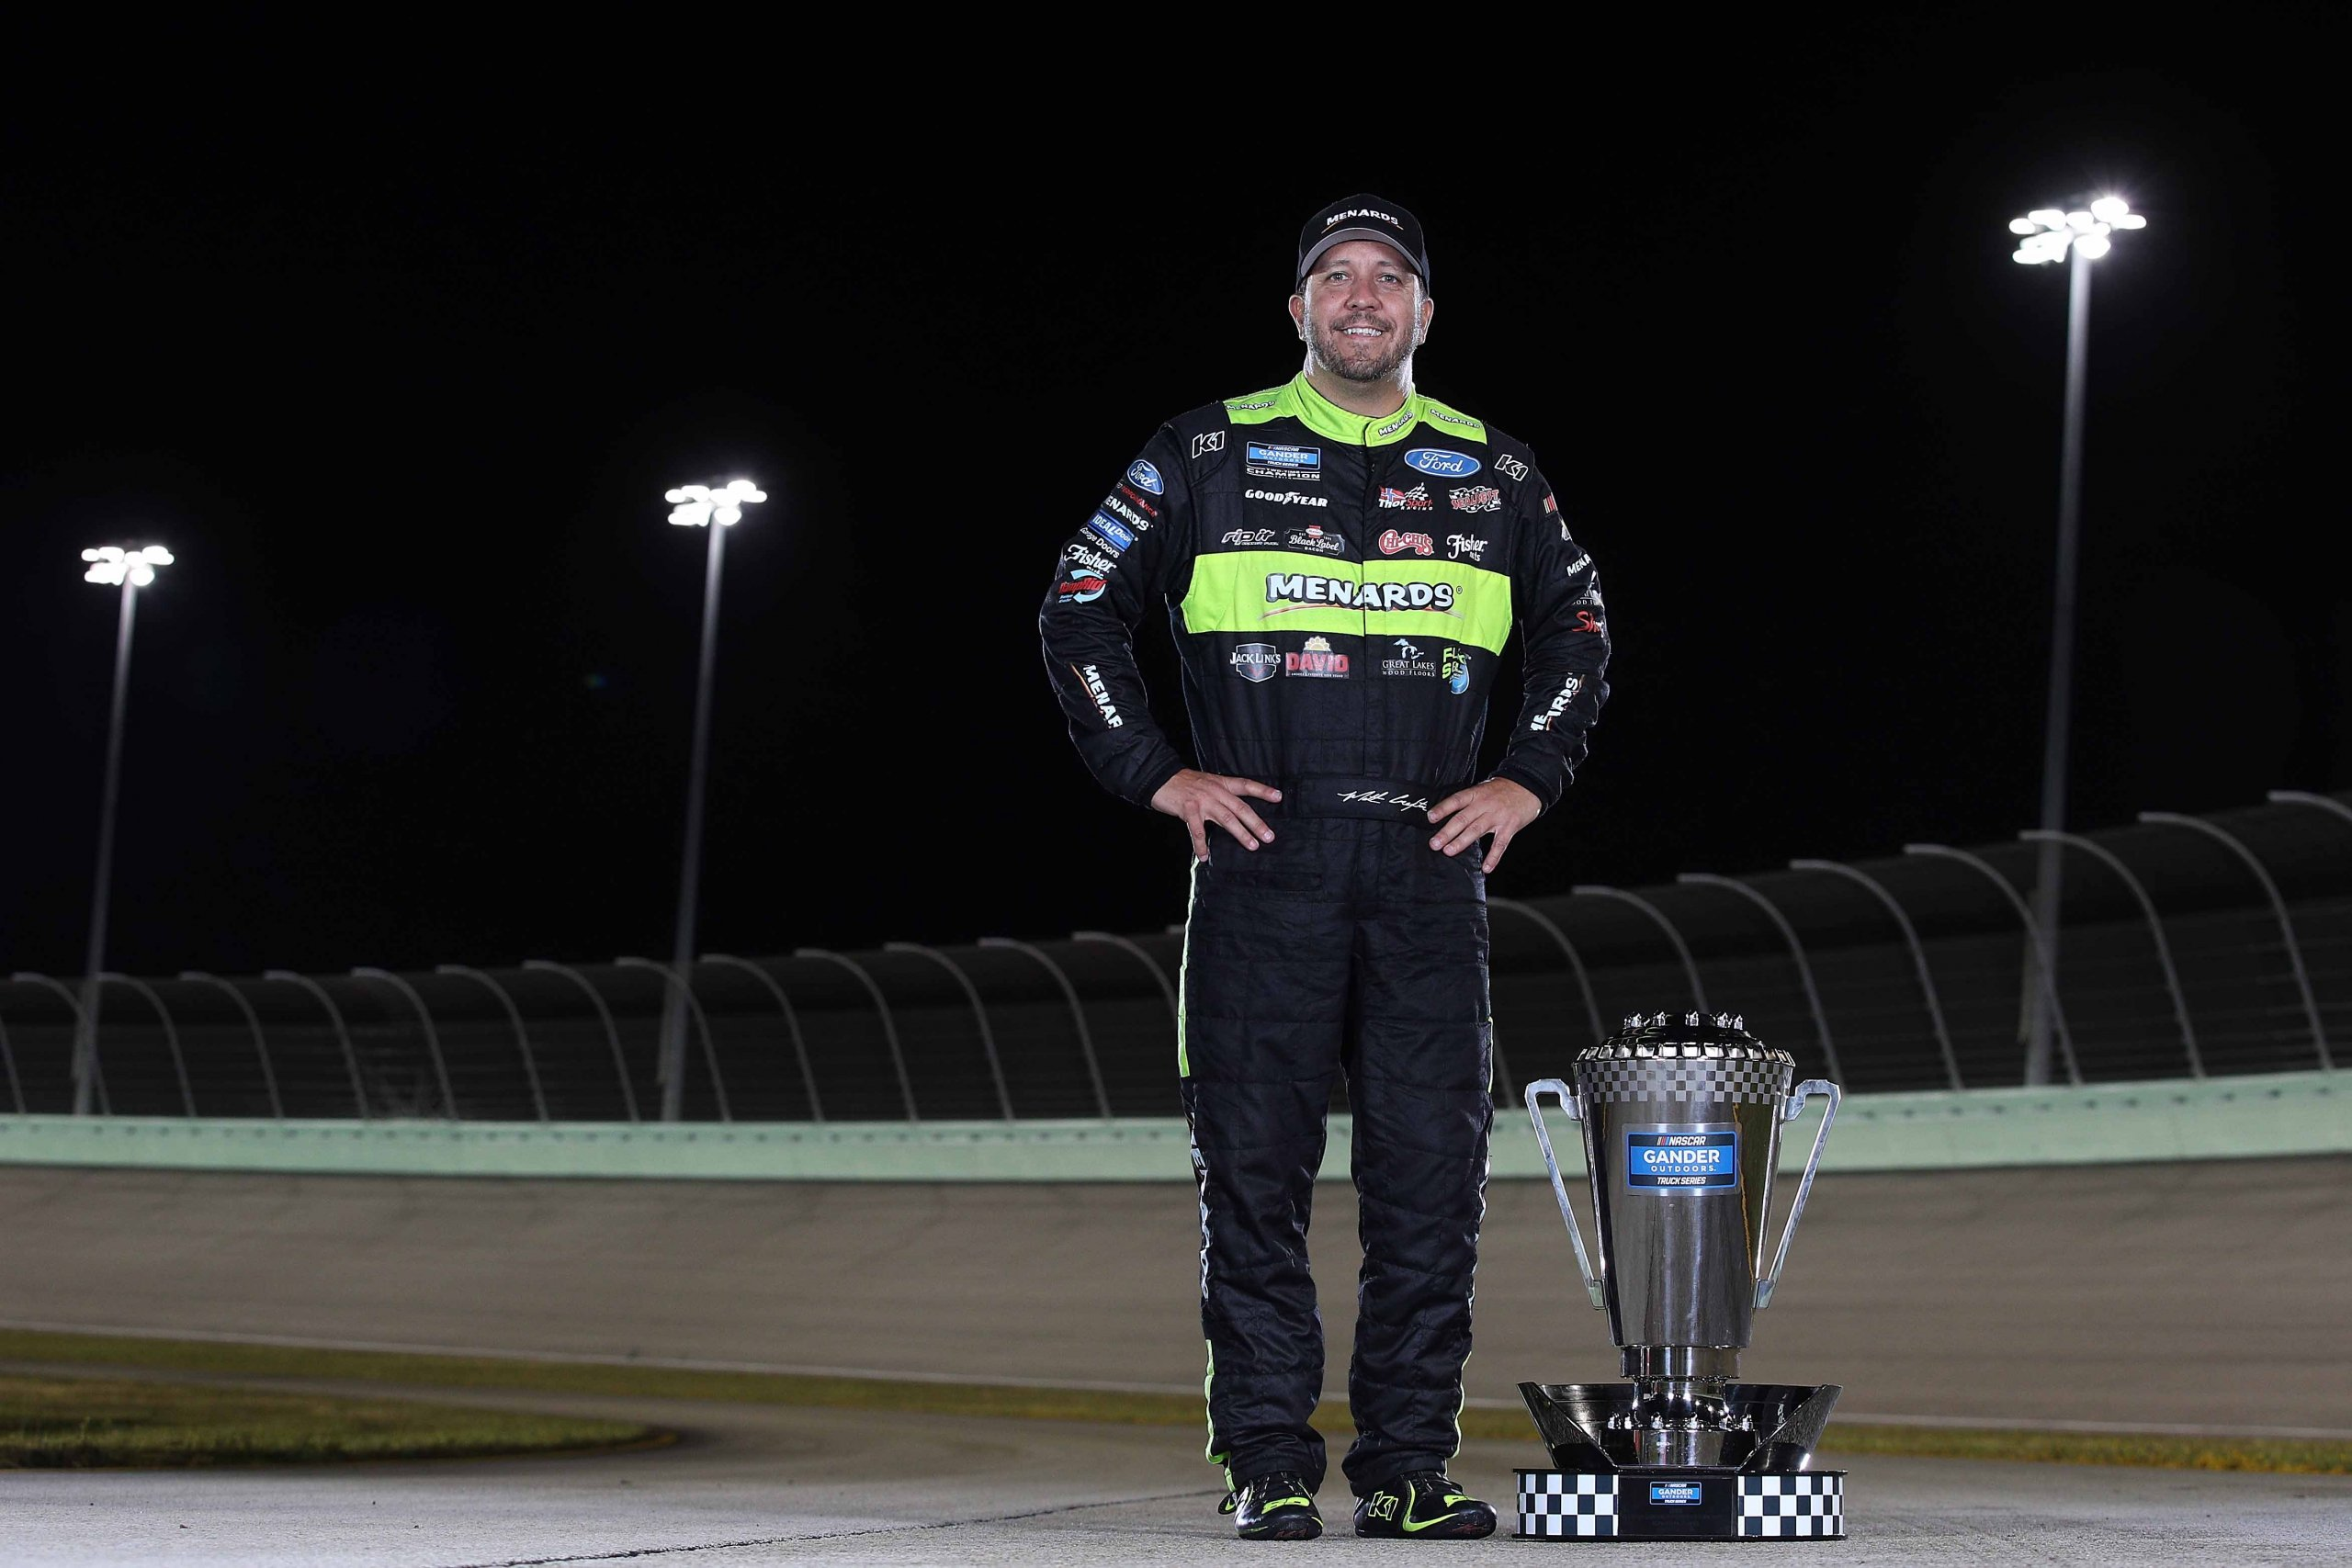 2019 NASCAR Gander Outdoors Truck Series champion Matt Crafton